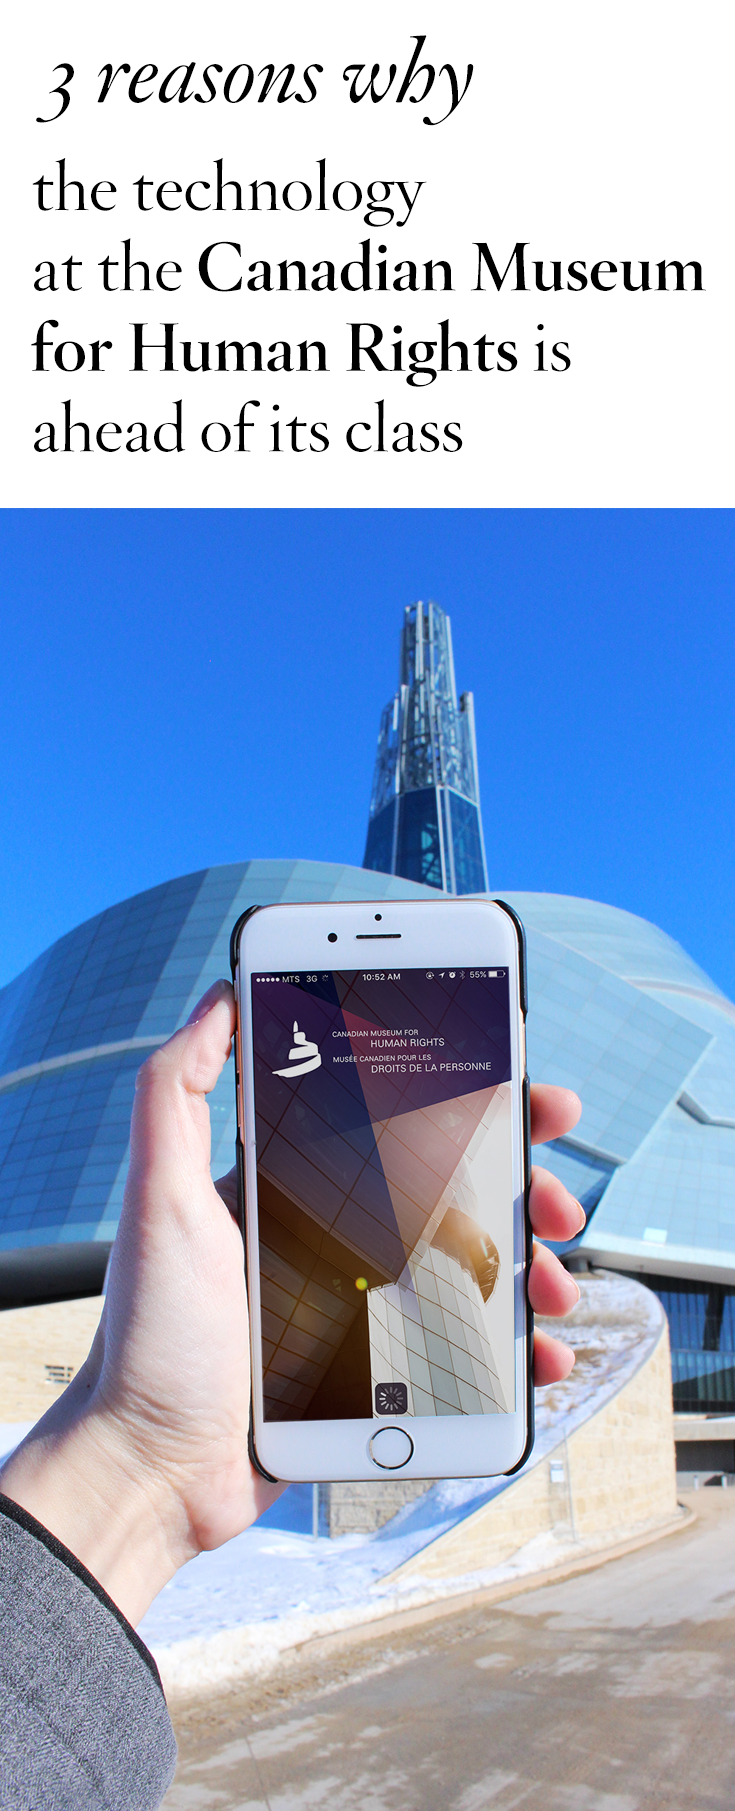 3 reasons why the technology at the Canadian Museum for Human Rights is ahead of its class